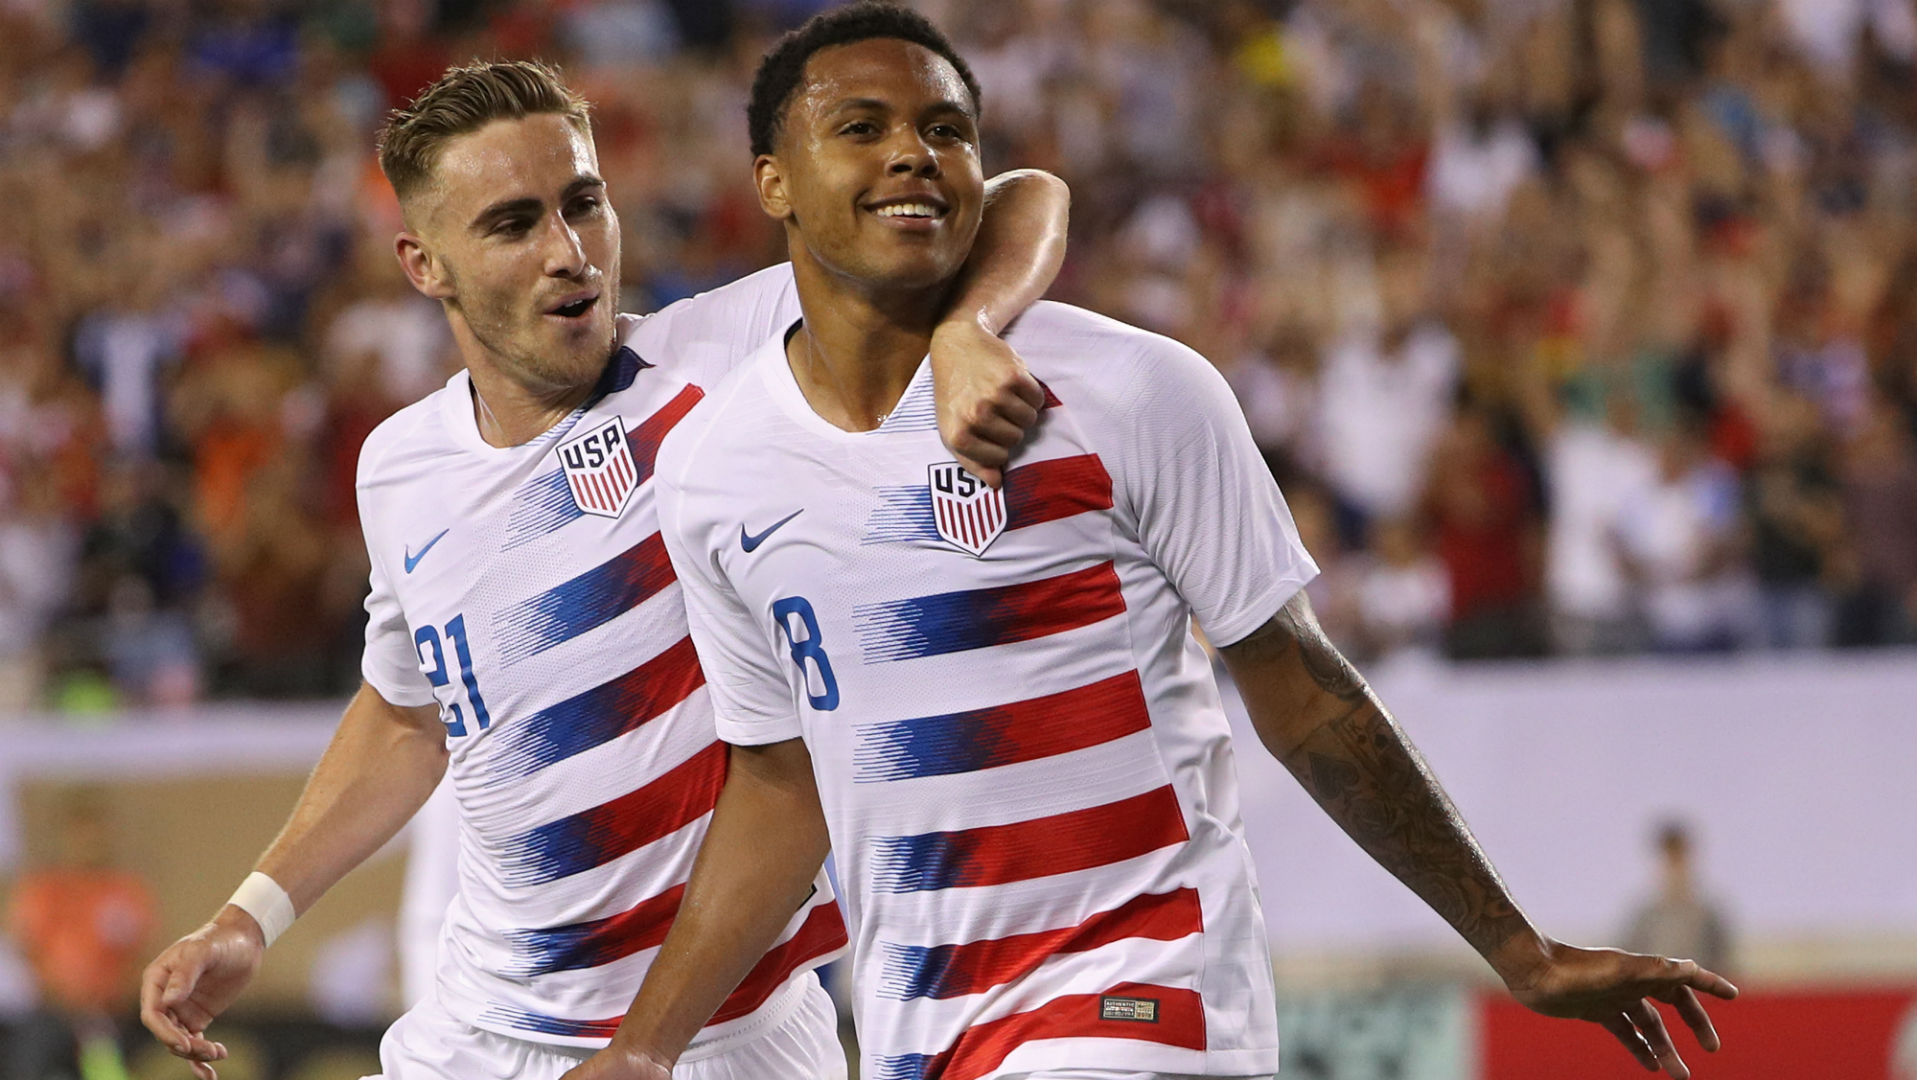 USMNT reaches Gold Cup final, will face Mexico next